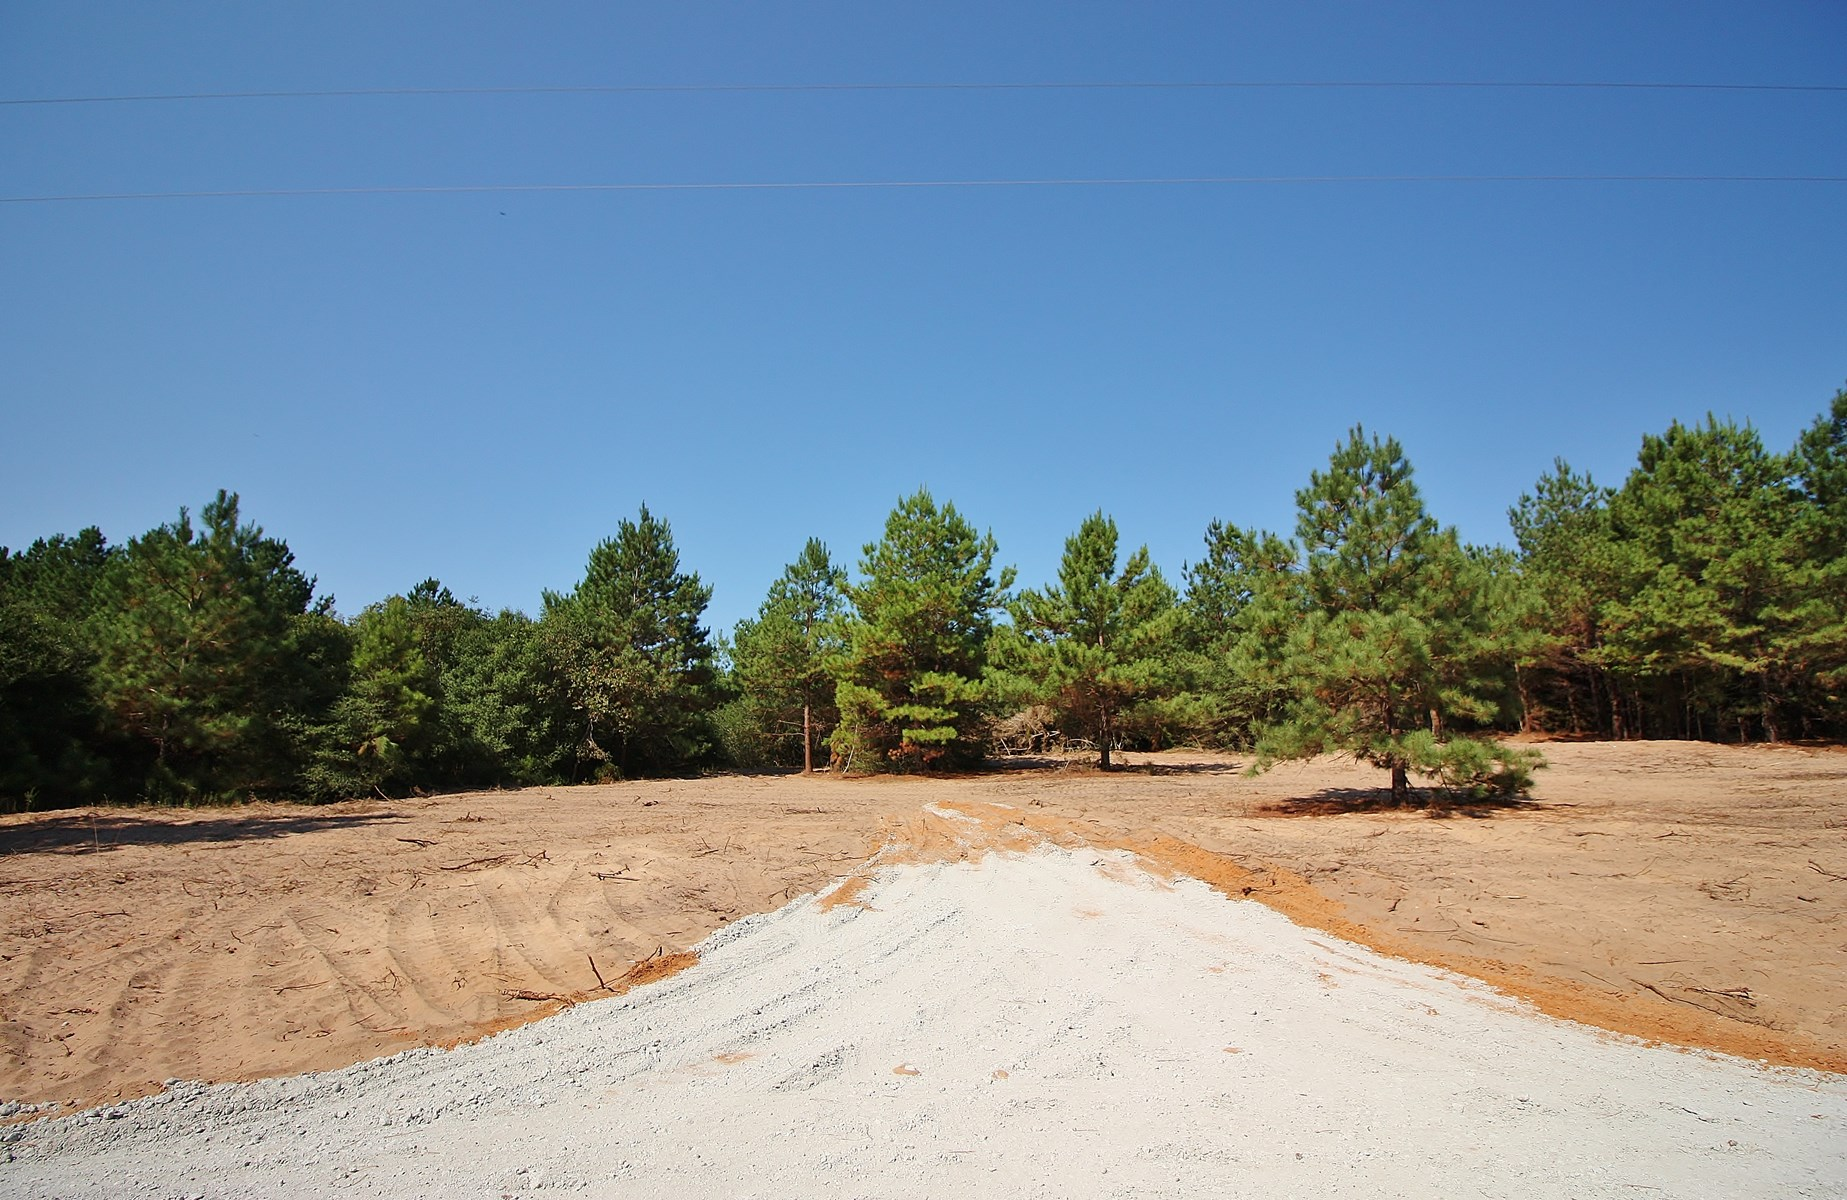 Unrestricted Wooded Land For Sale in Leon Co, TX - 5.01 AC